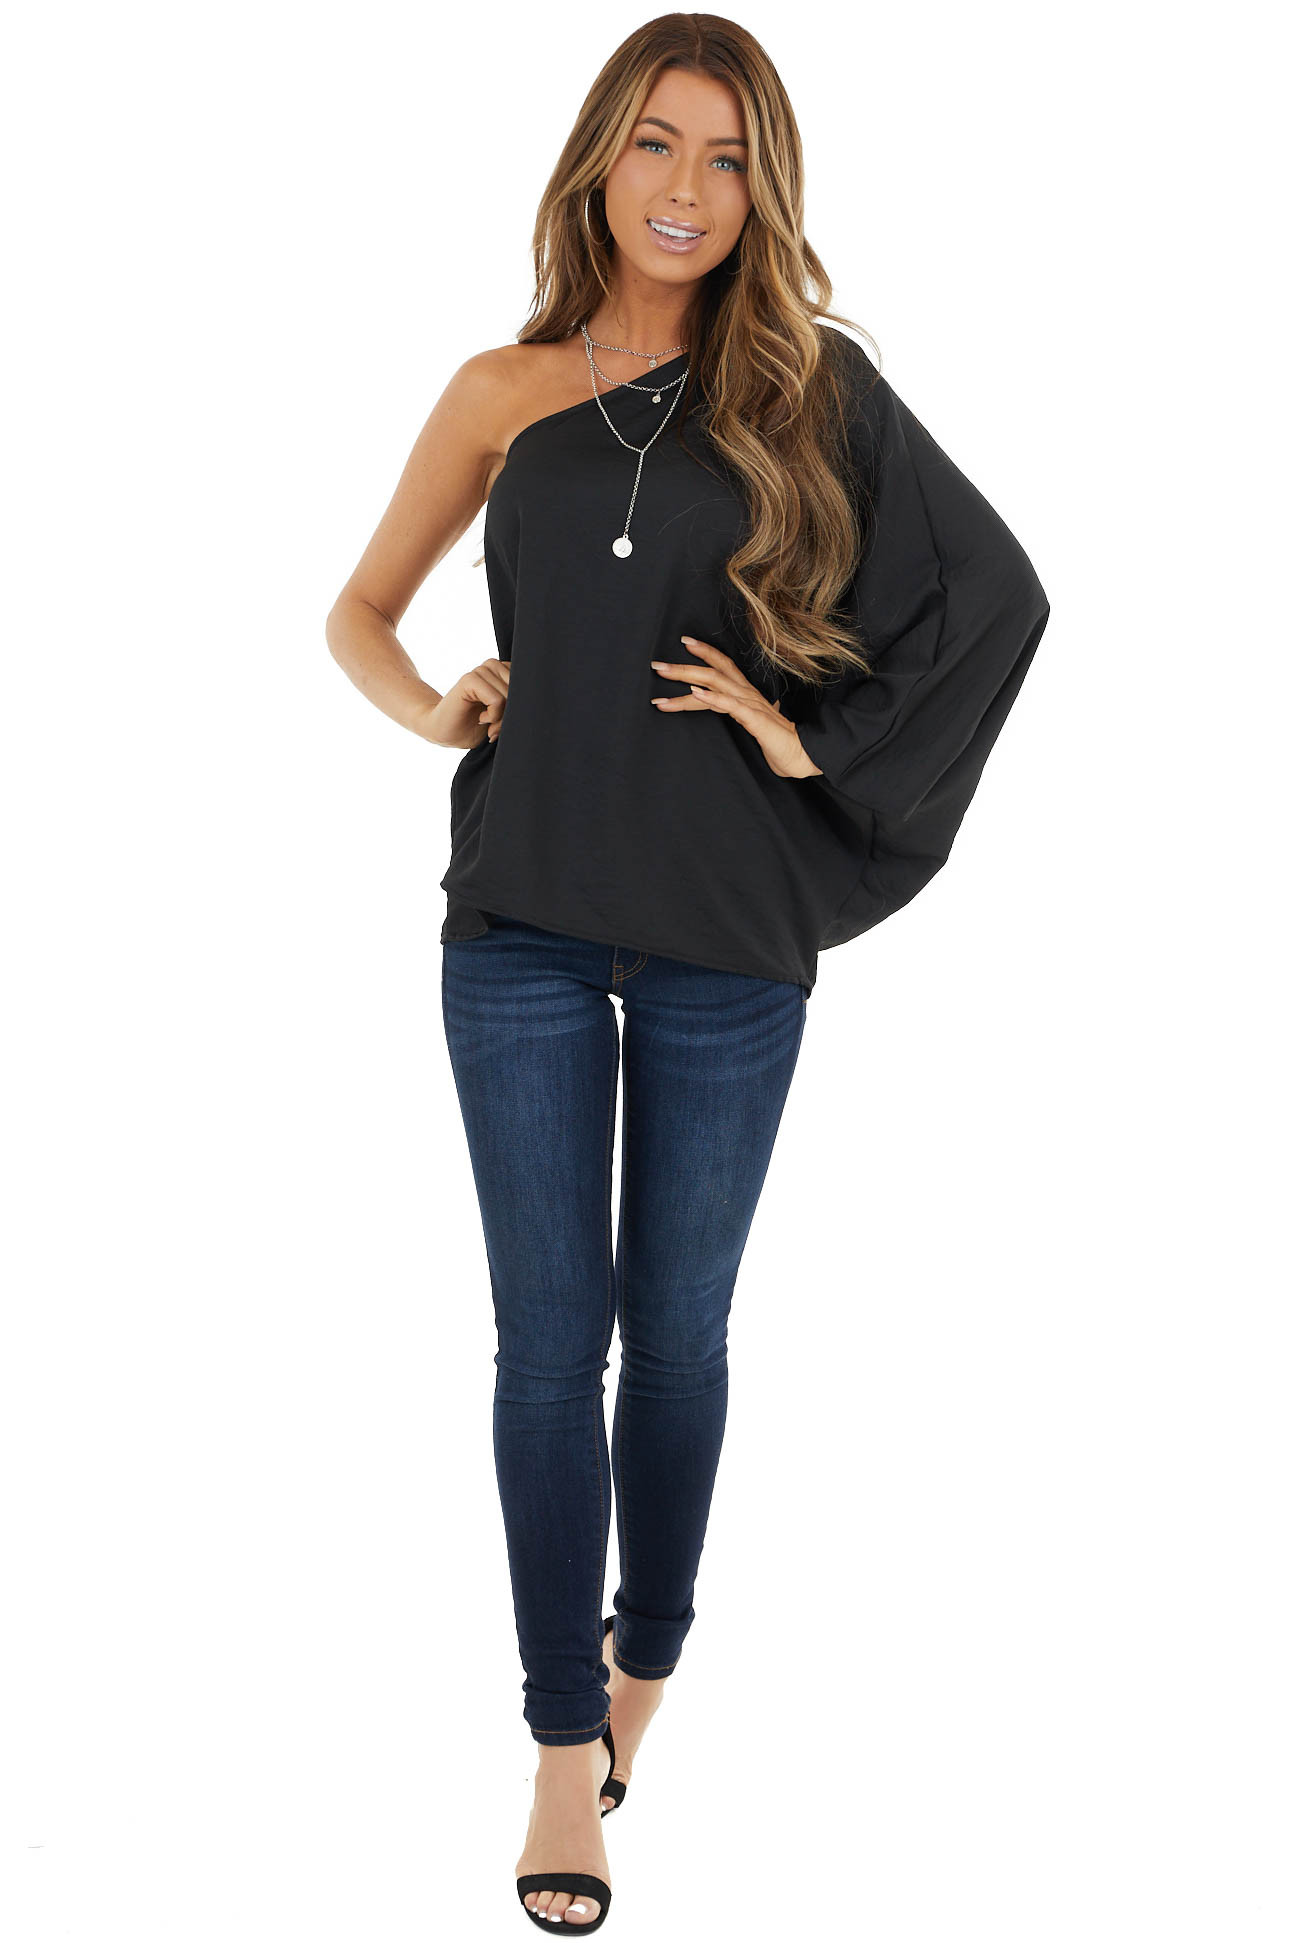 Black One Shoulder Woven Top with Long Dolman Sleeve